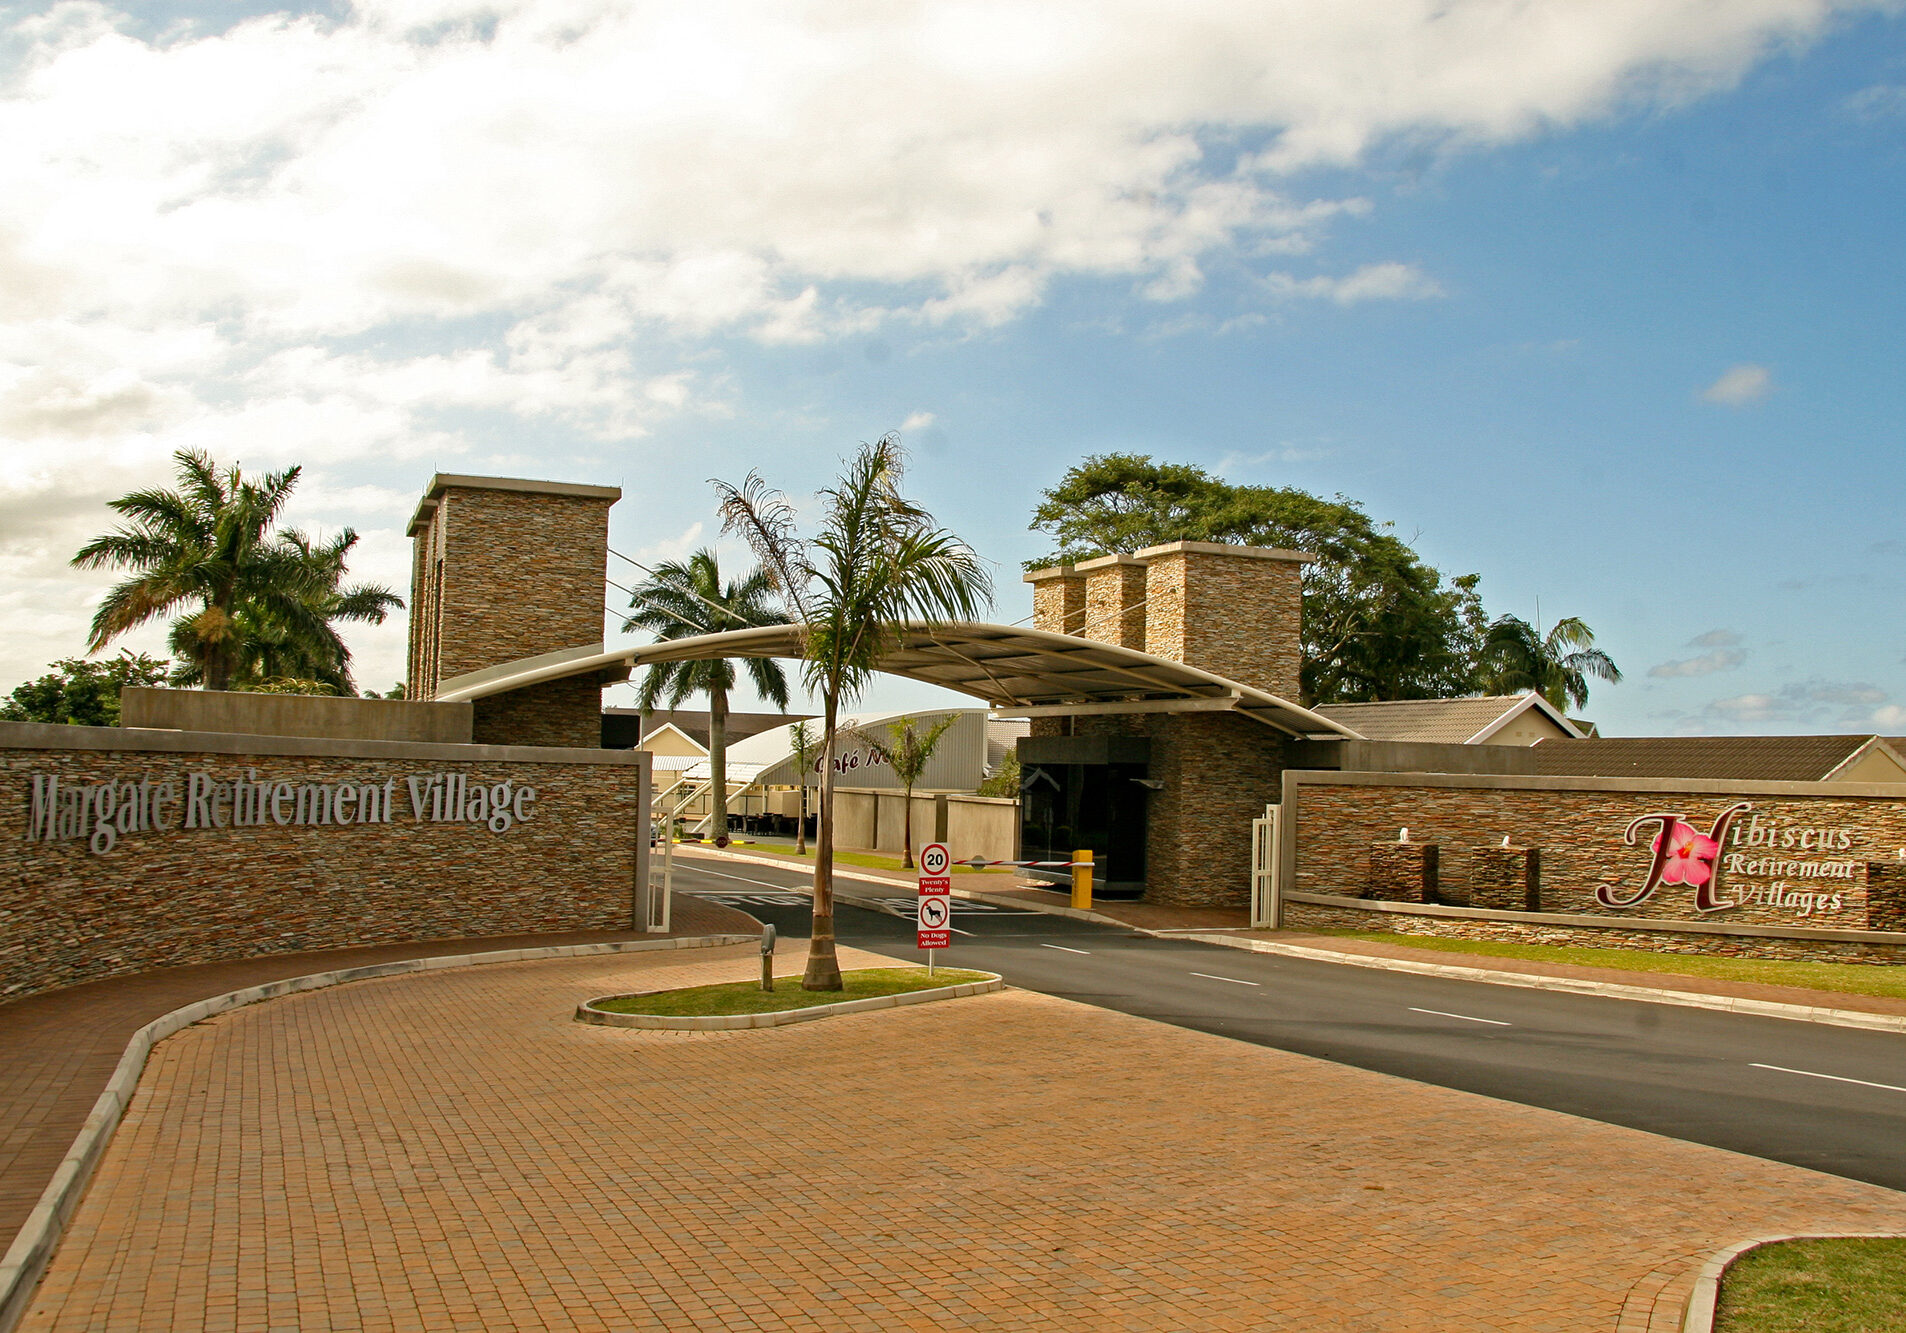 margate-village-entrance